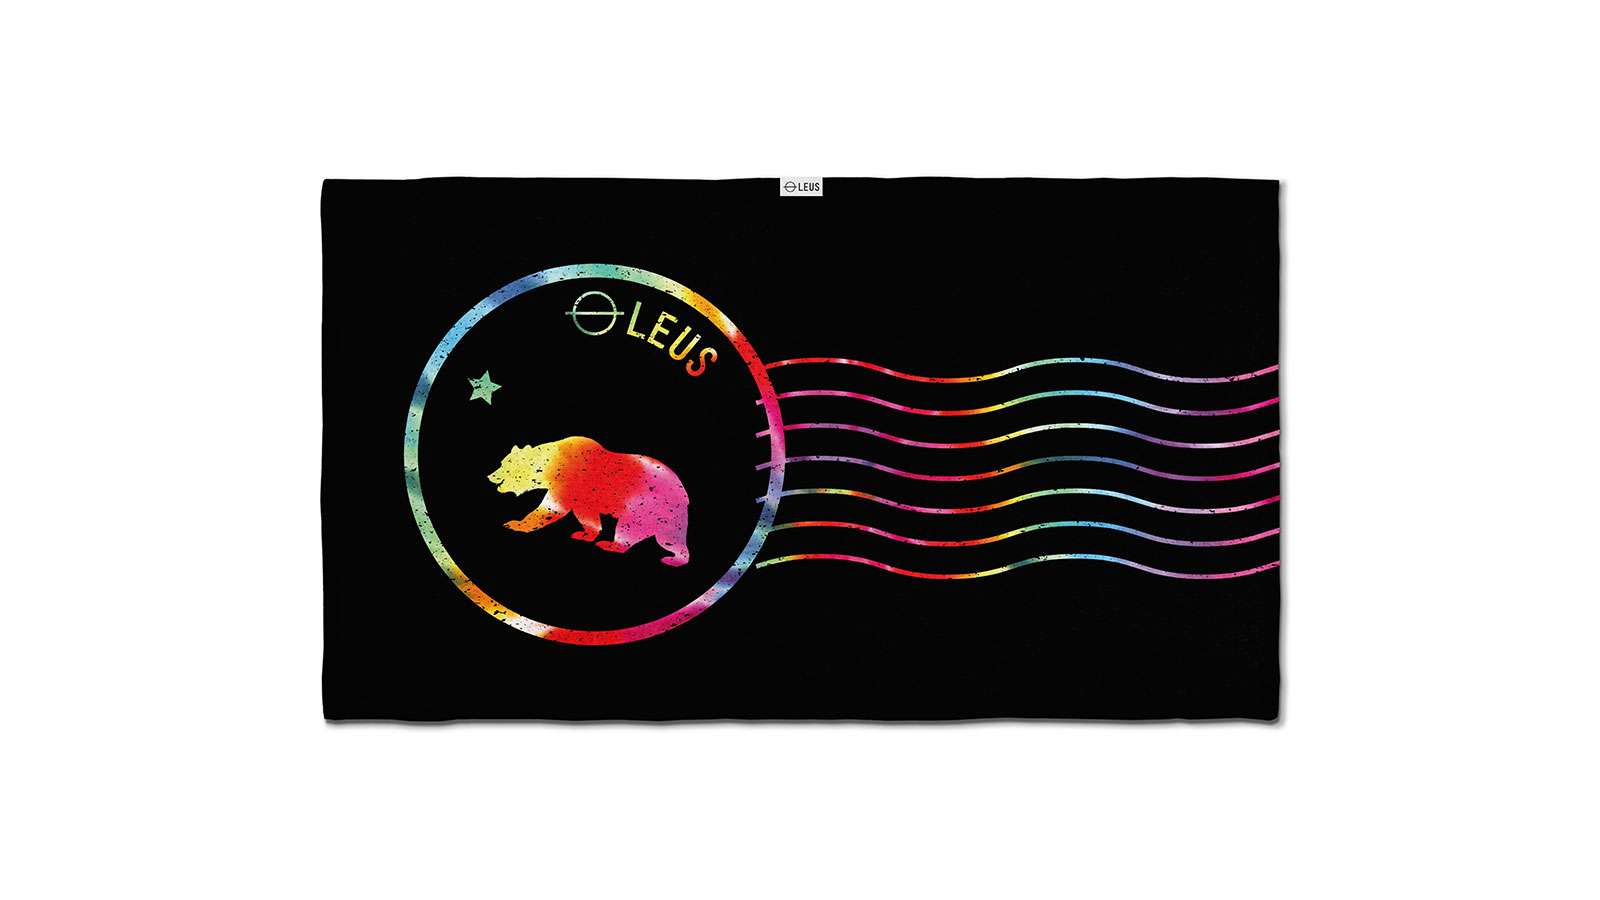 Leus Young Wise Tails Express towel